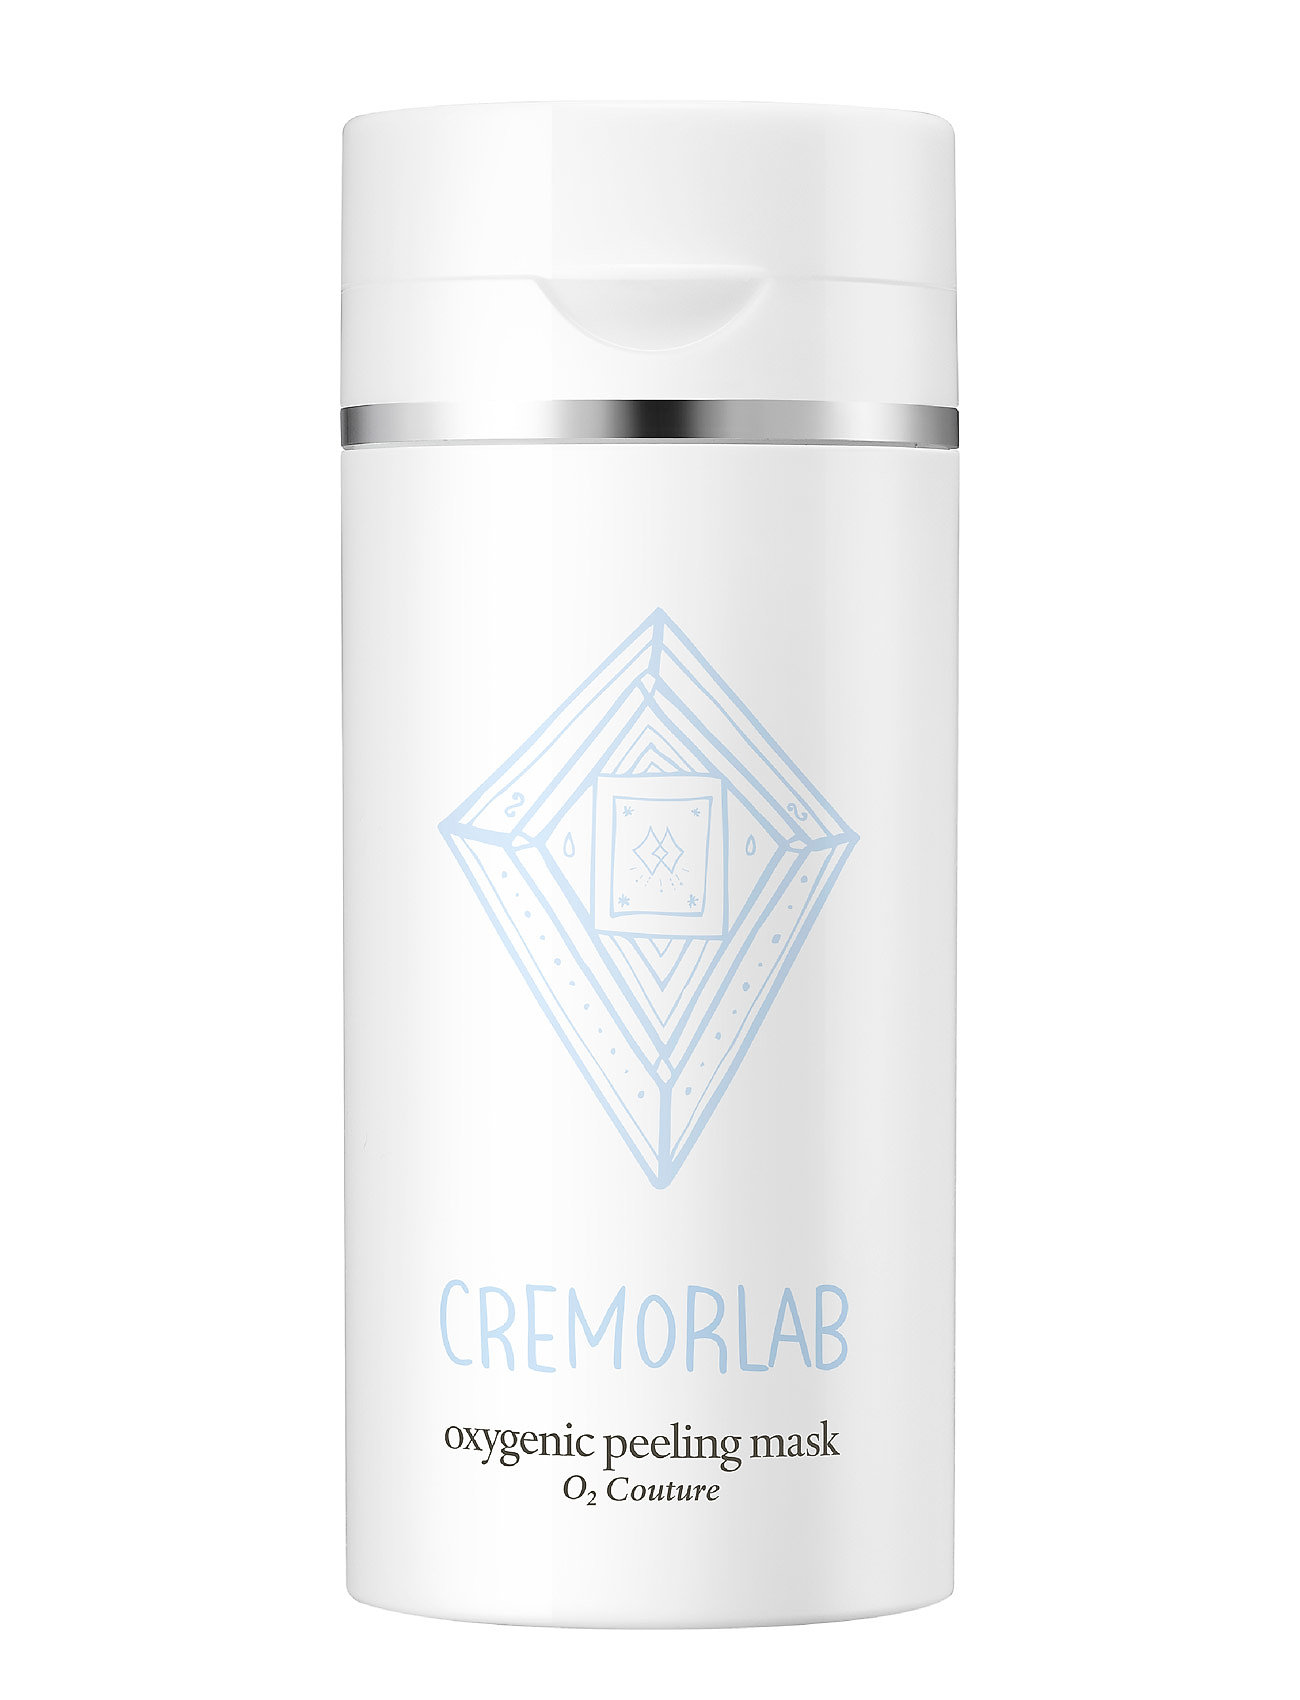 Image of O2 Couture Oxygenic Peeling Mask Beauty WOMEN Skin Care Face Face Masks Blå Cremorlab (3217403767)